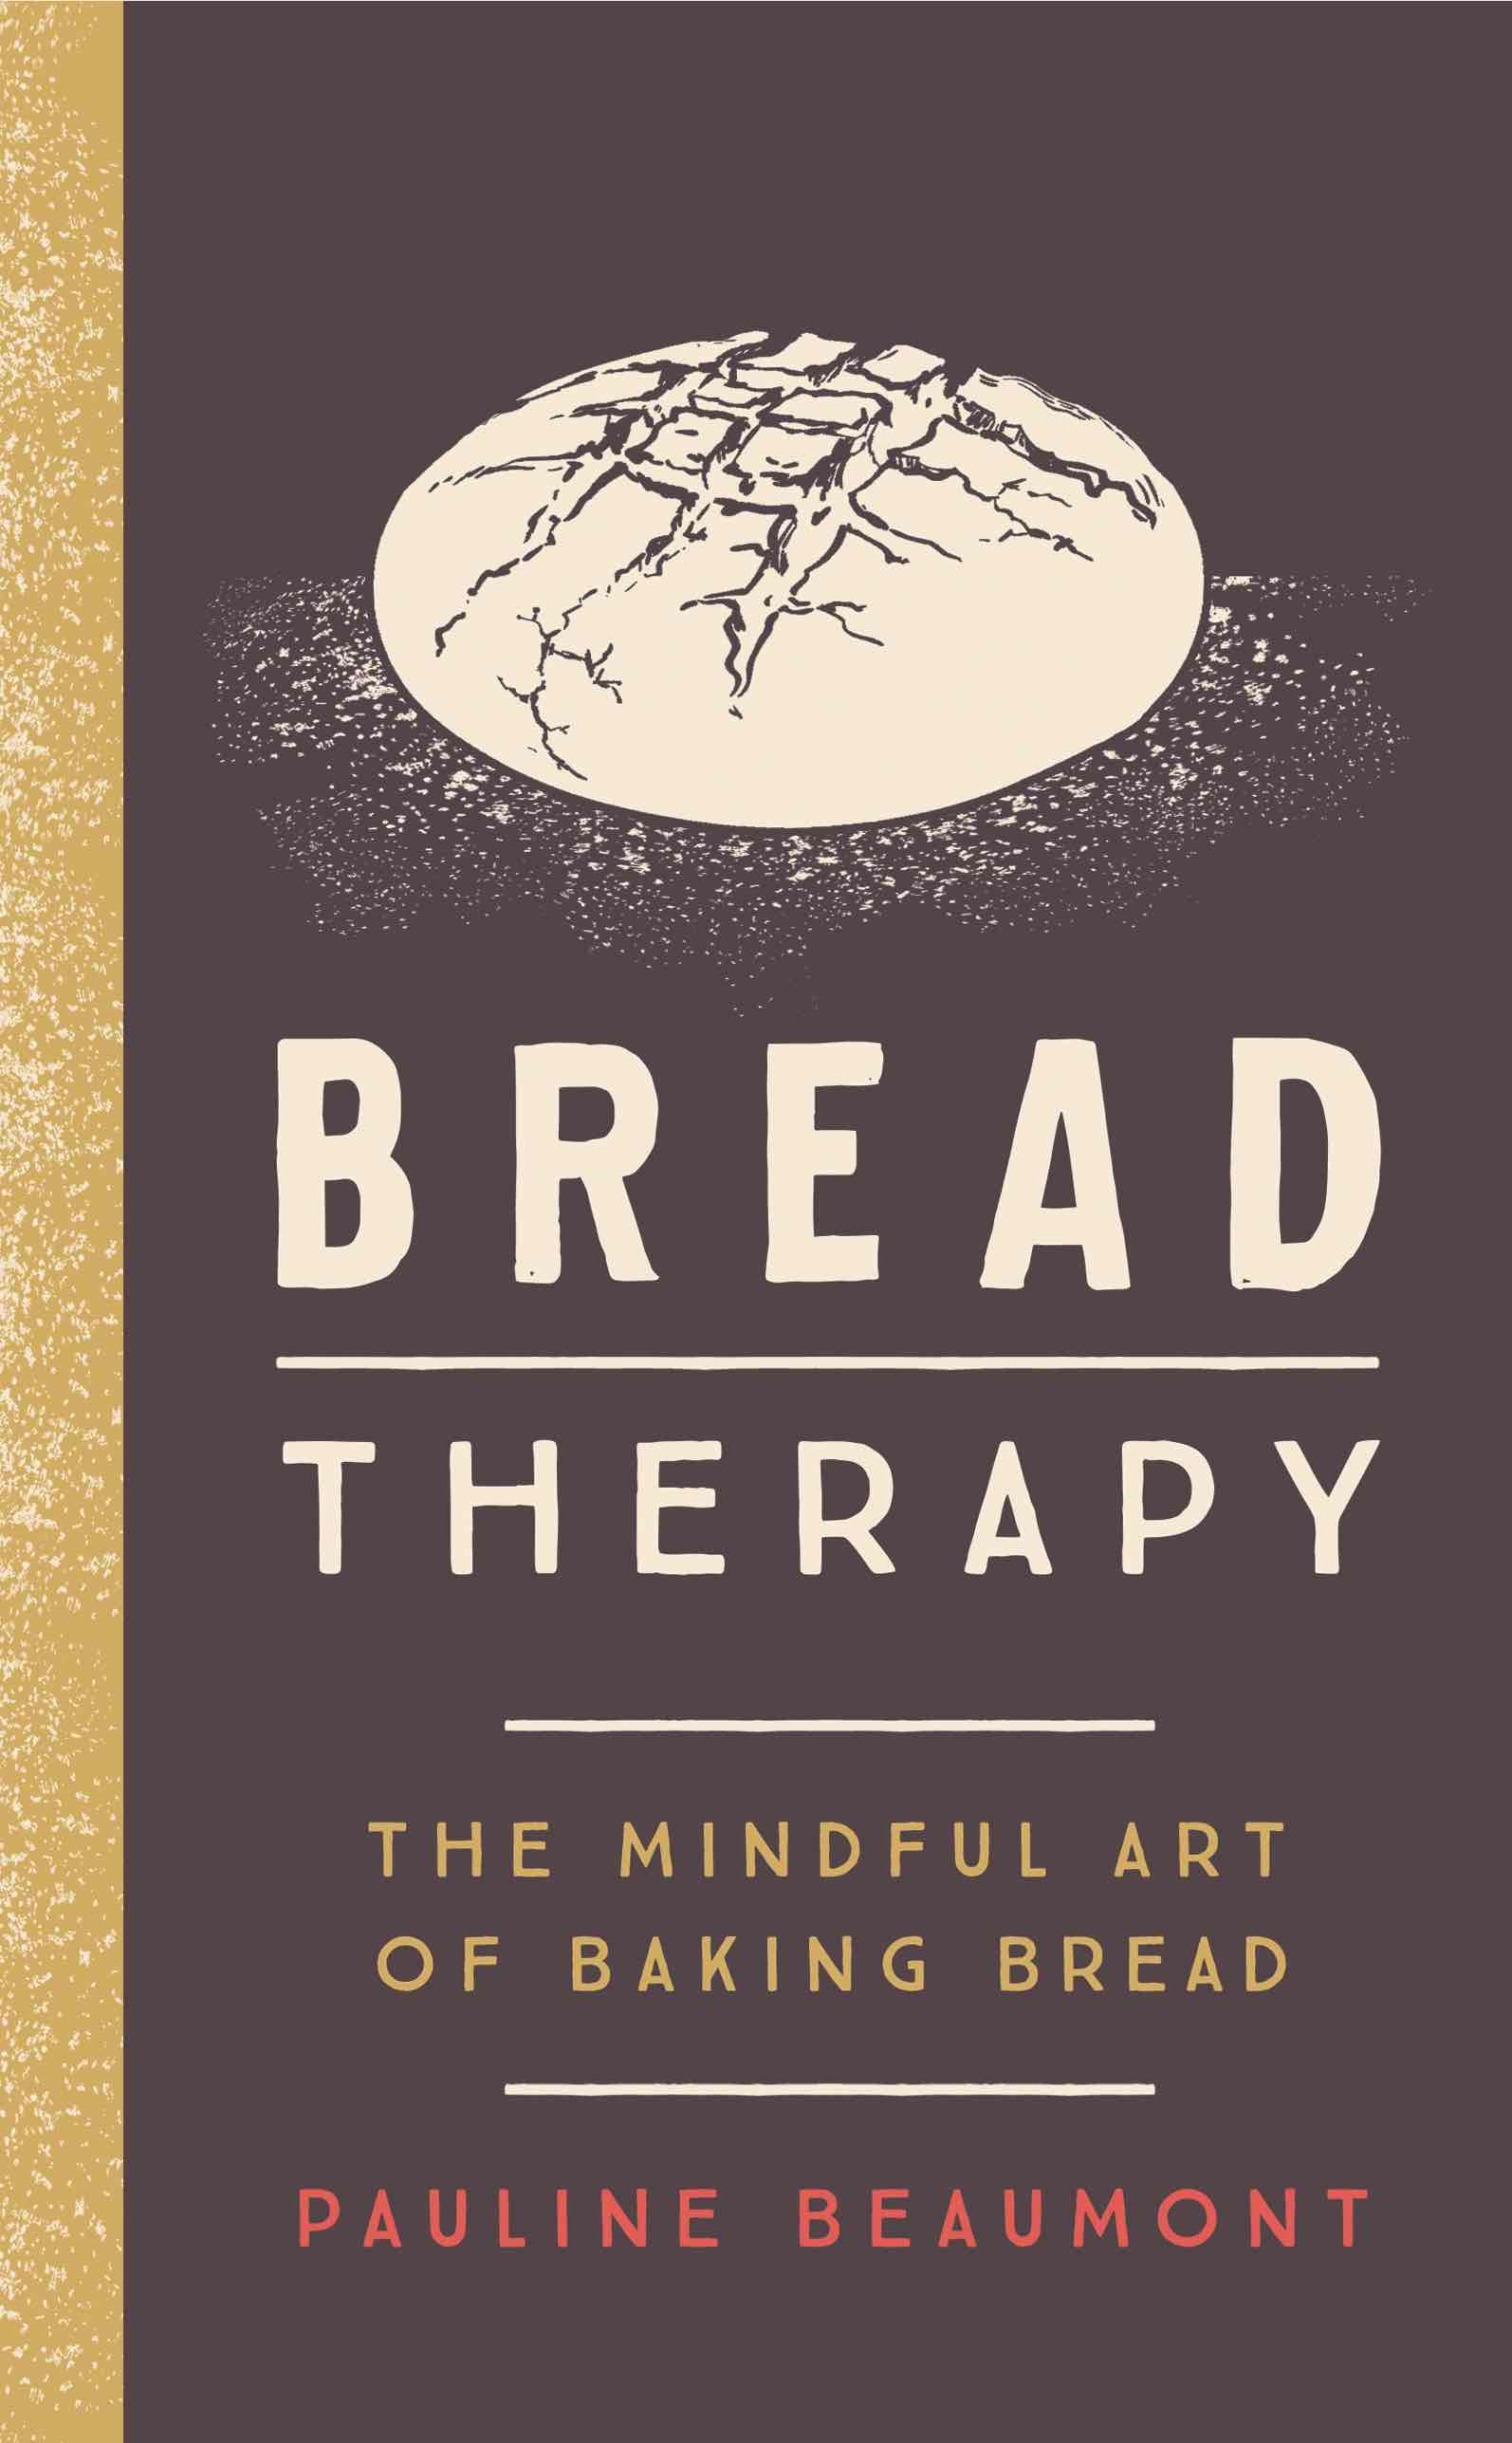 Bread-Therapy-Jacket